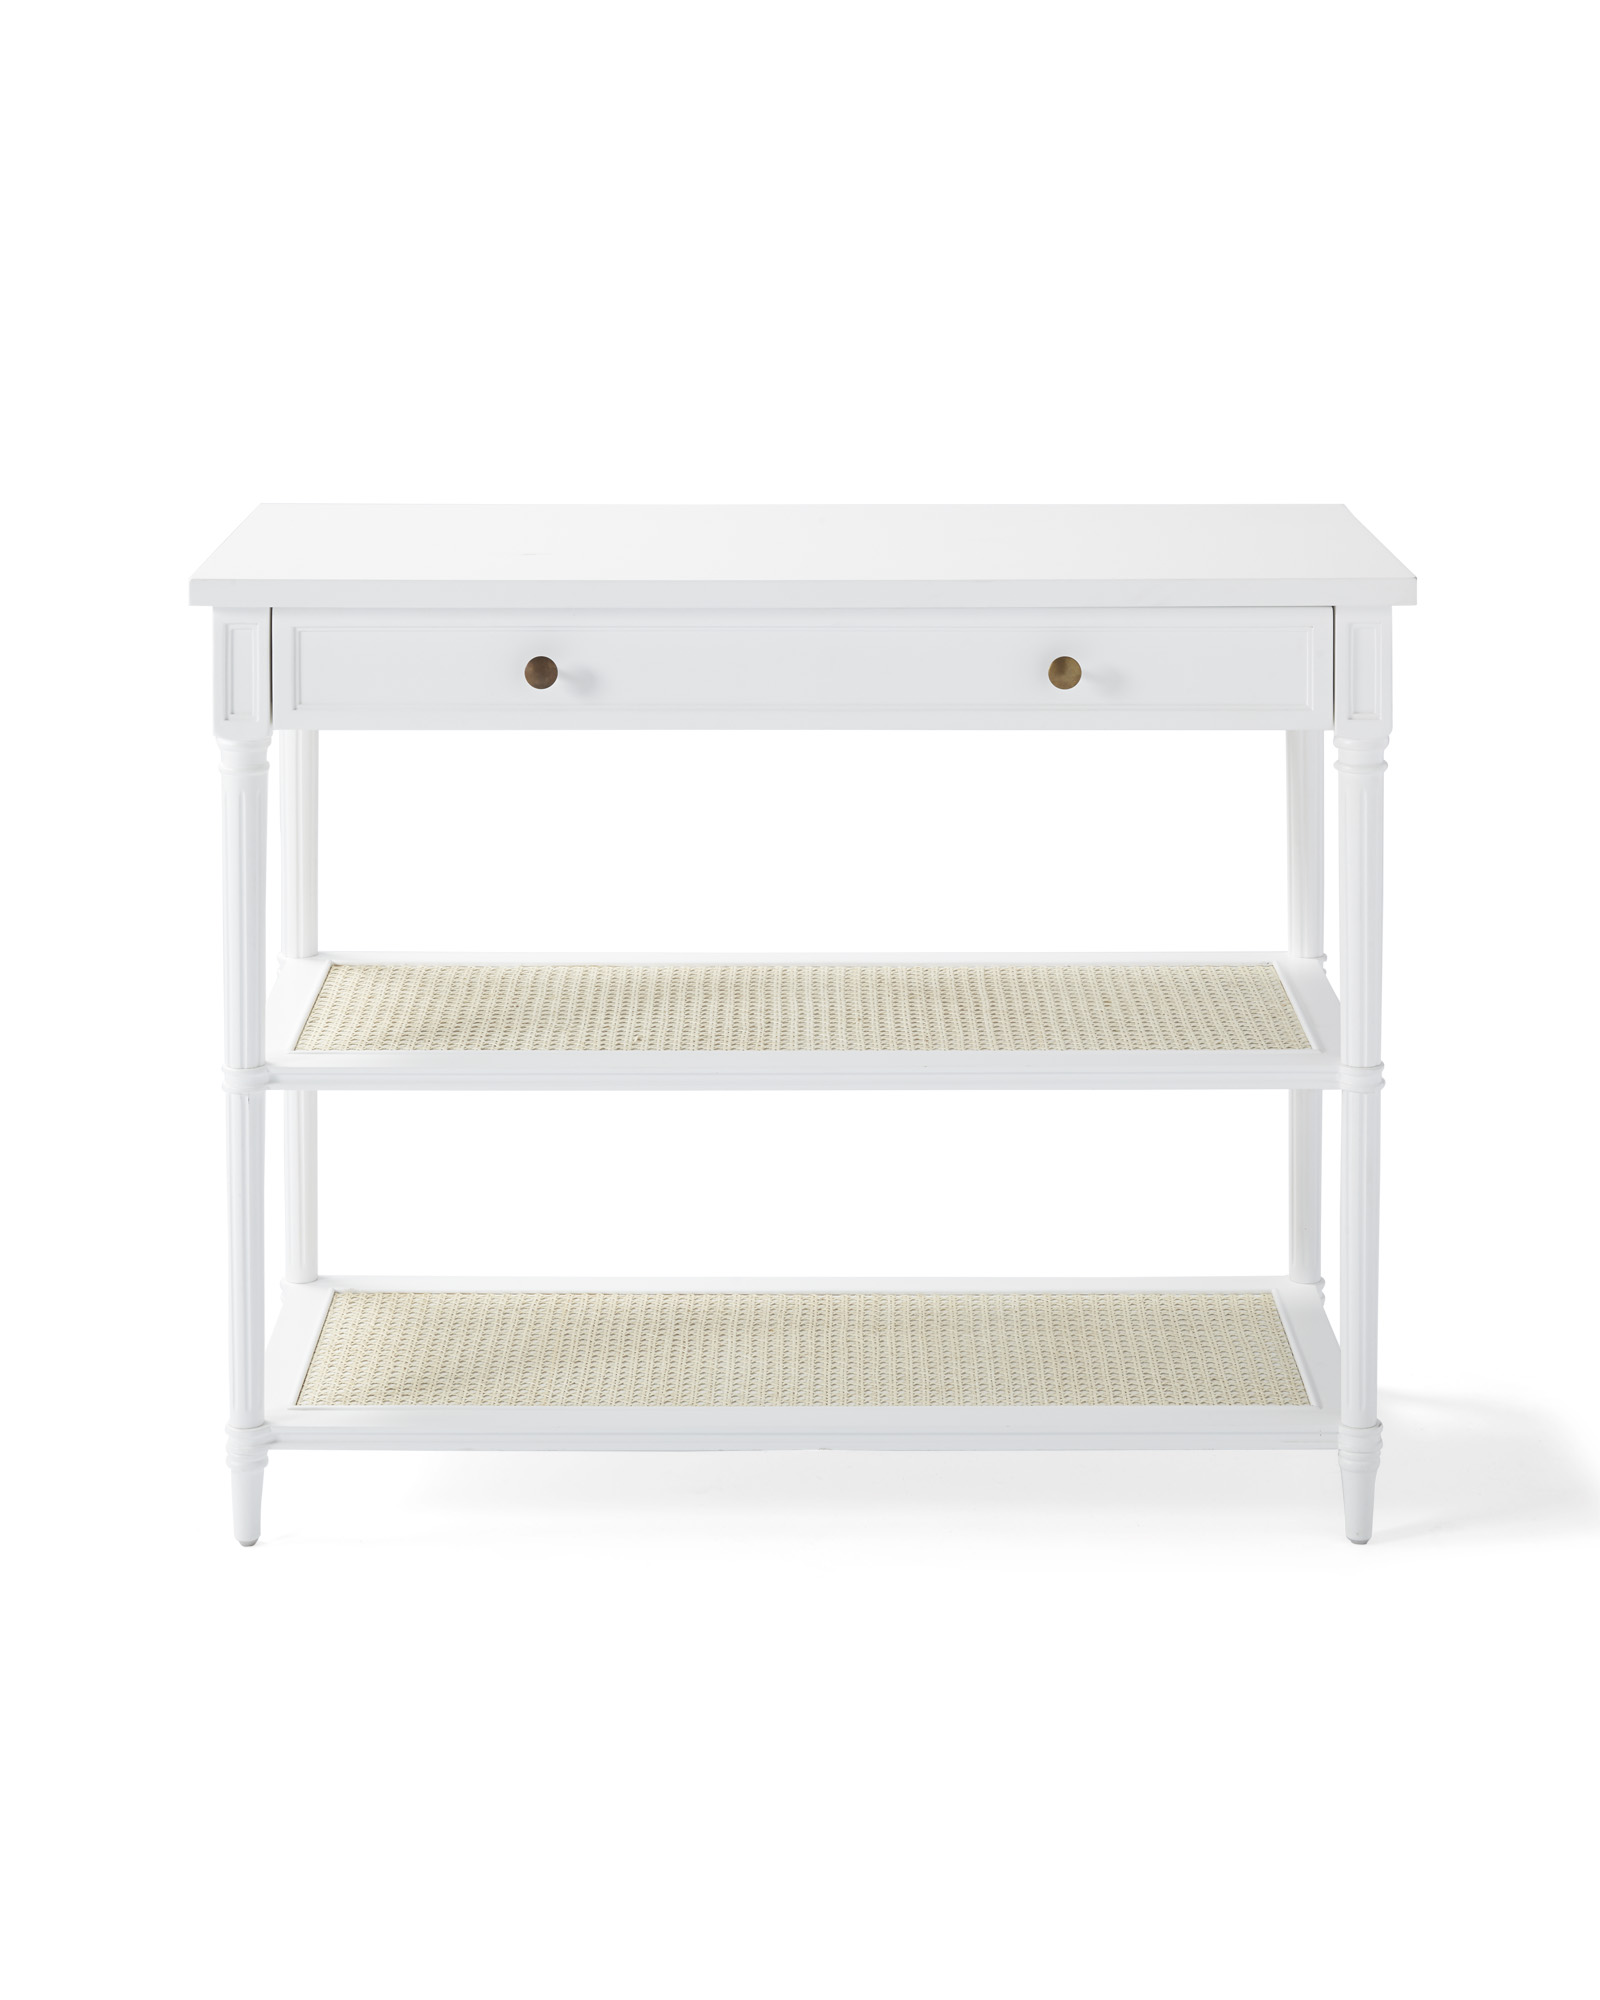 Nursery_Harbour_Changing_Table_White_MV_0311_Crop_SH.jpg